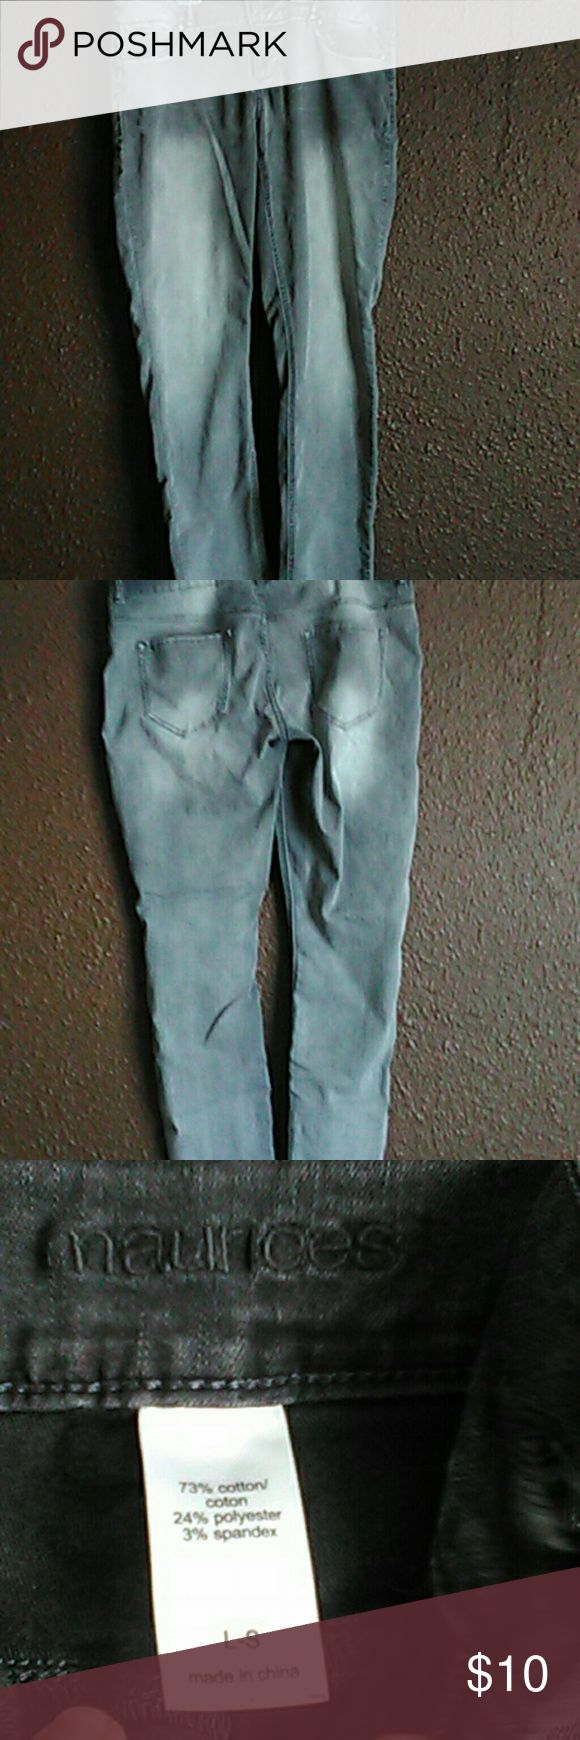 Gray jeggings Women's jeggings from Maurices like new bought them last year then couldn't wear them because of pregnancy like new condition Maurices Pants Leggings